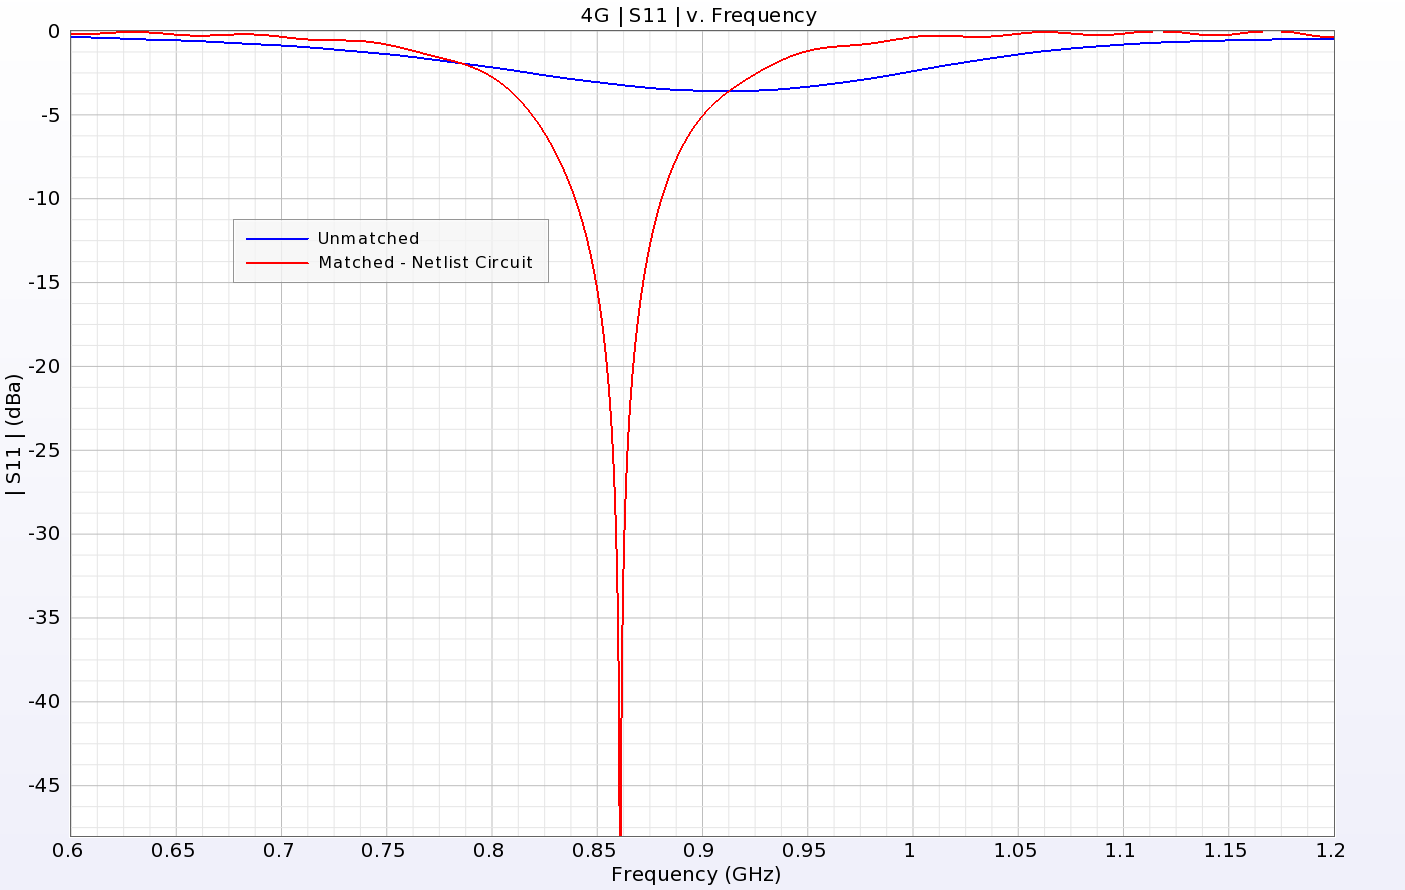 Figure 6: Return loss comparison for the unmatched and matched 4G antenna.